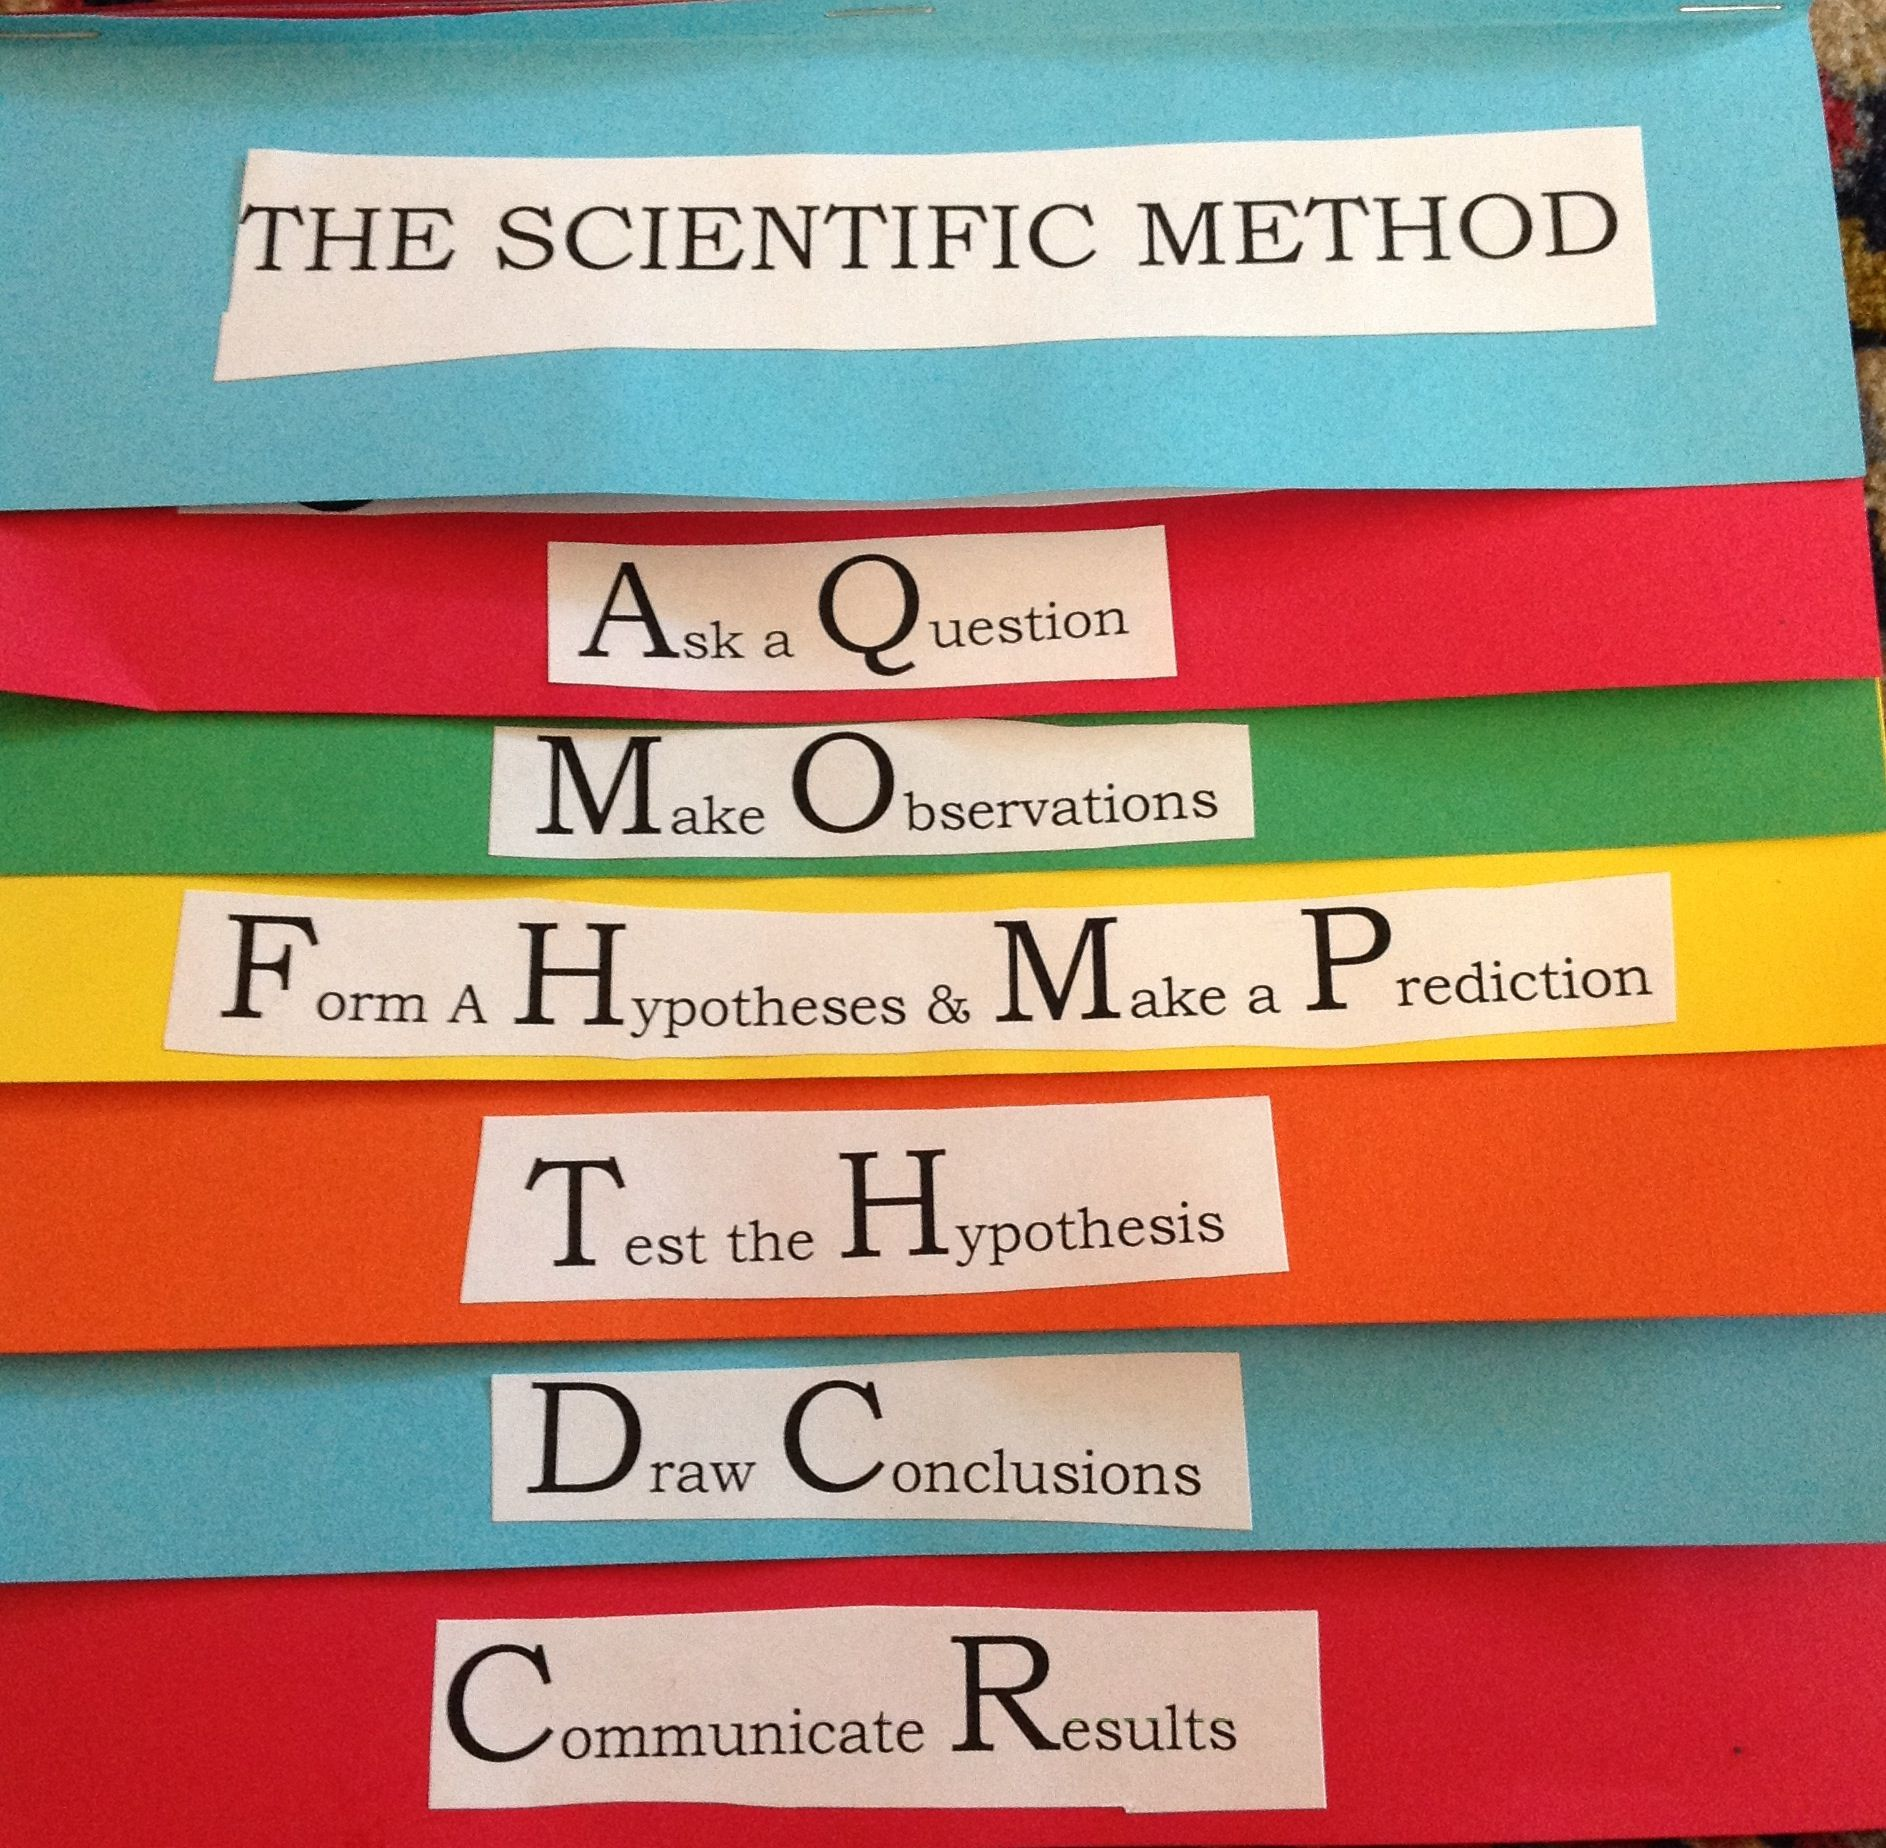 Classroom Ideas Science : Scientific method foldable flip book classroom ideas